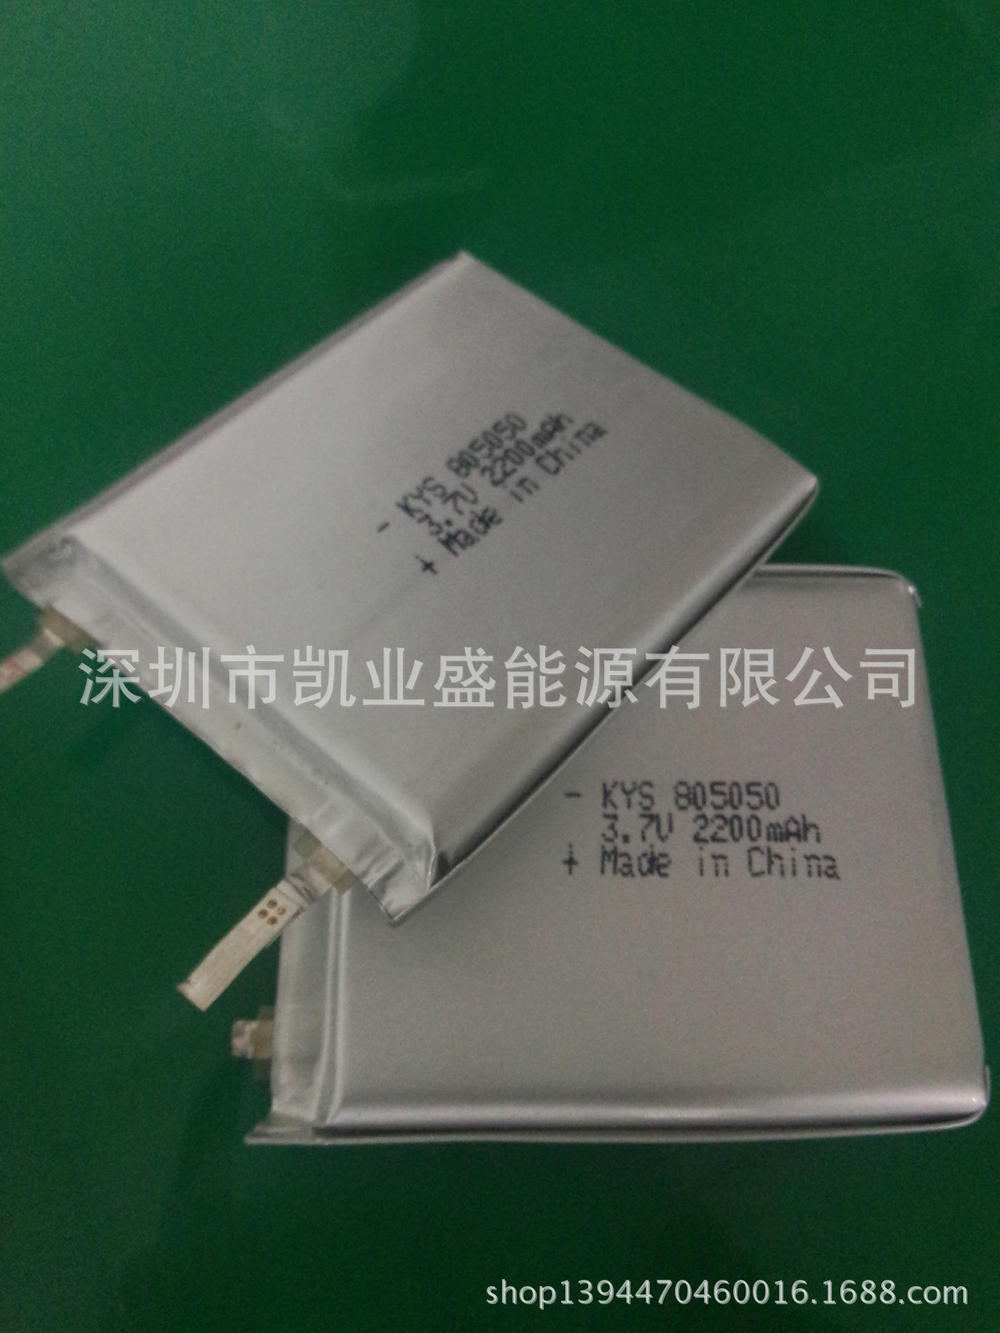 Factory direct backup power / electric tools dedicated lithium polymer battery 805050 085050(China (Mainland))